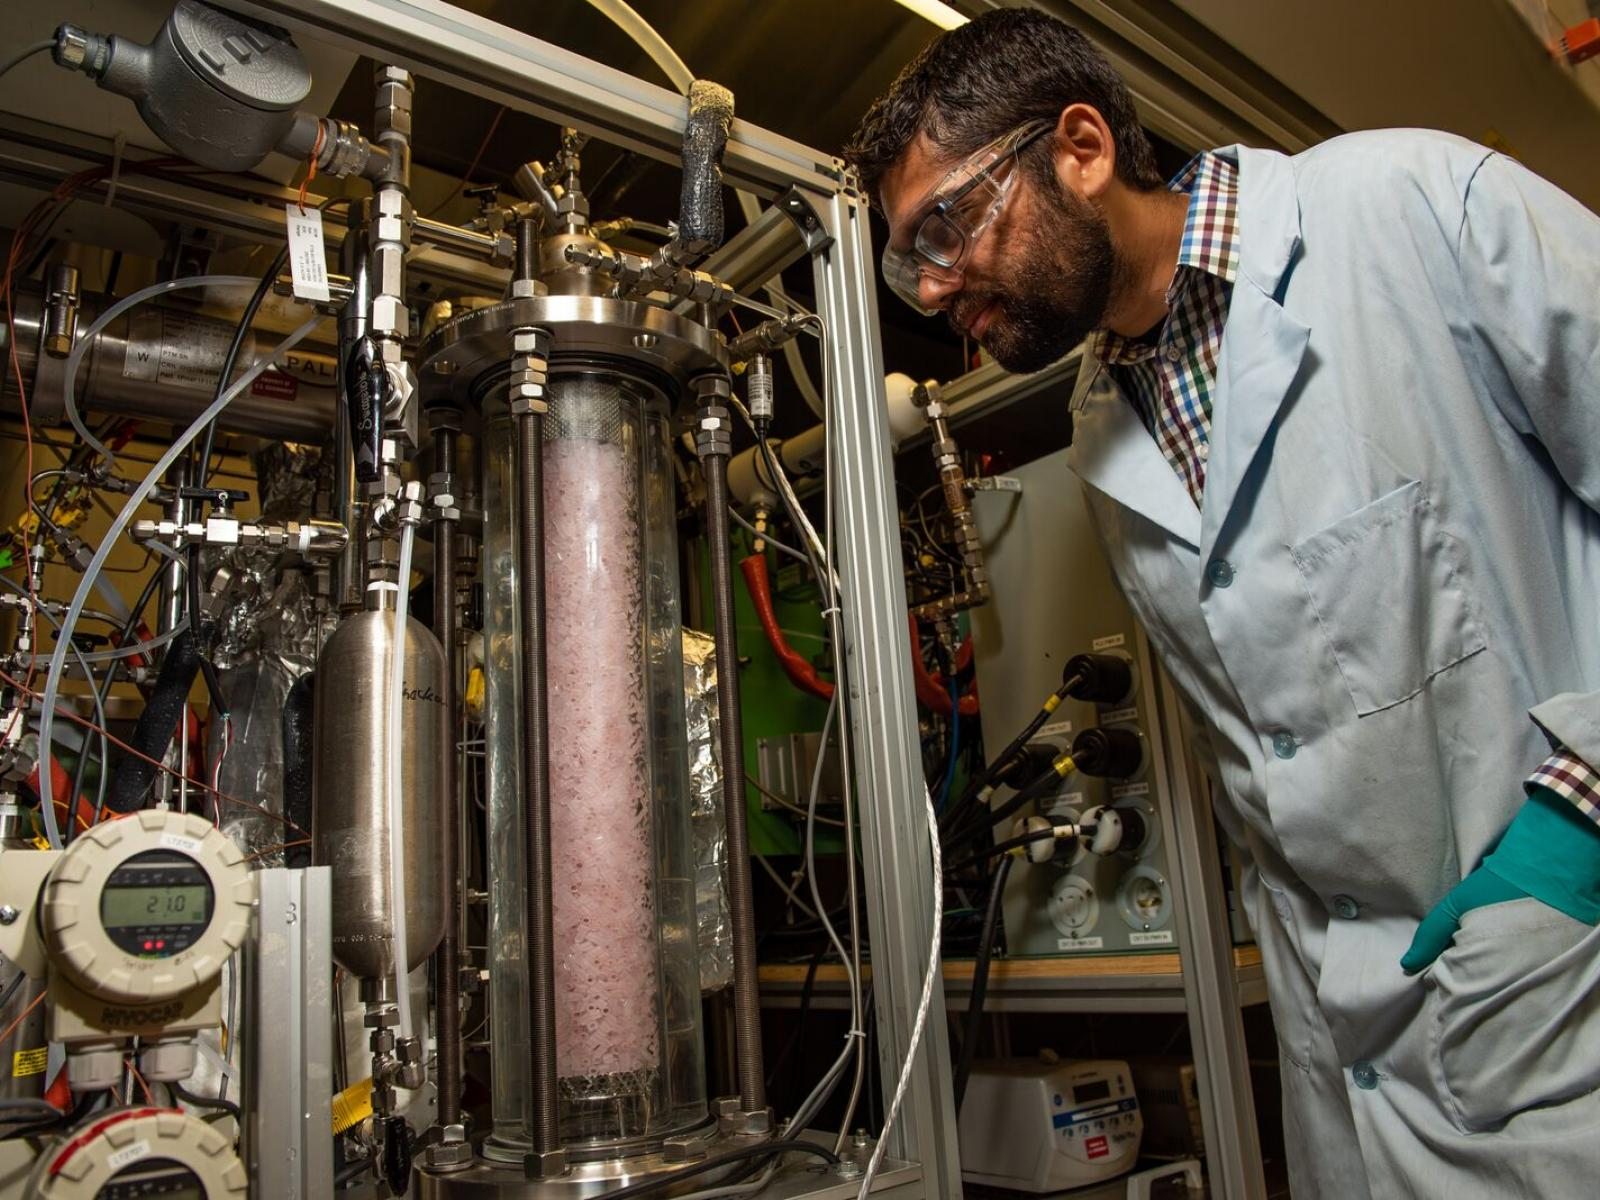 Chemical engineer Dushyant Barpaga observes the Laboratory Continuous Flow System, which researchers use to analyze the performance of CO2 capture solvents, like EEMPA, at small scales before testing at greater capacities.